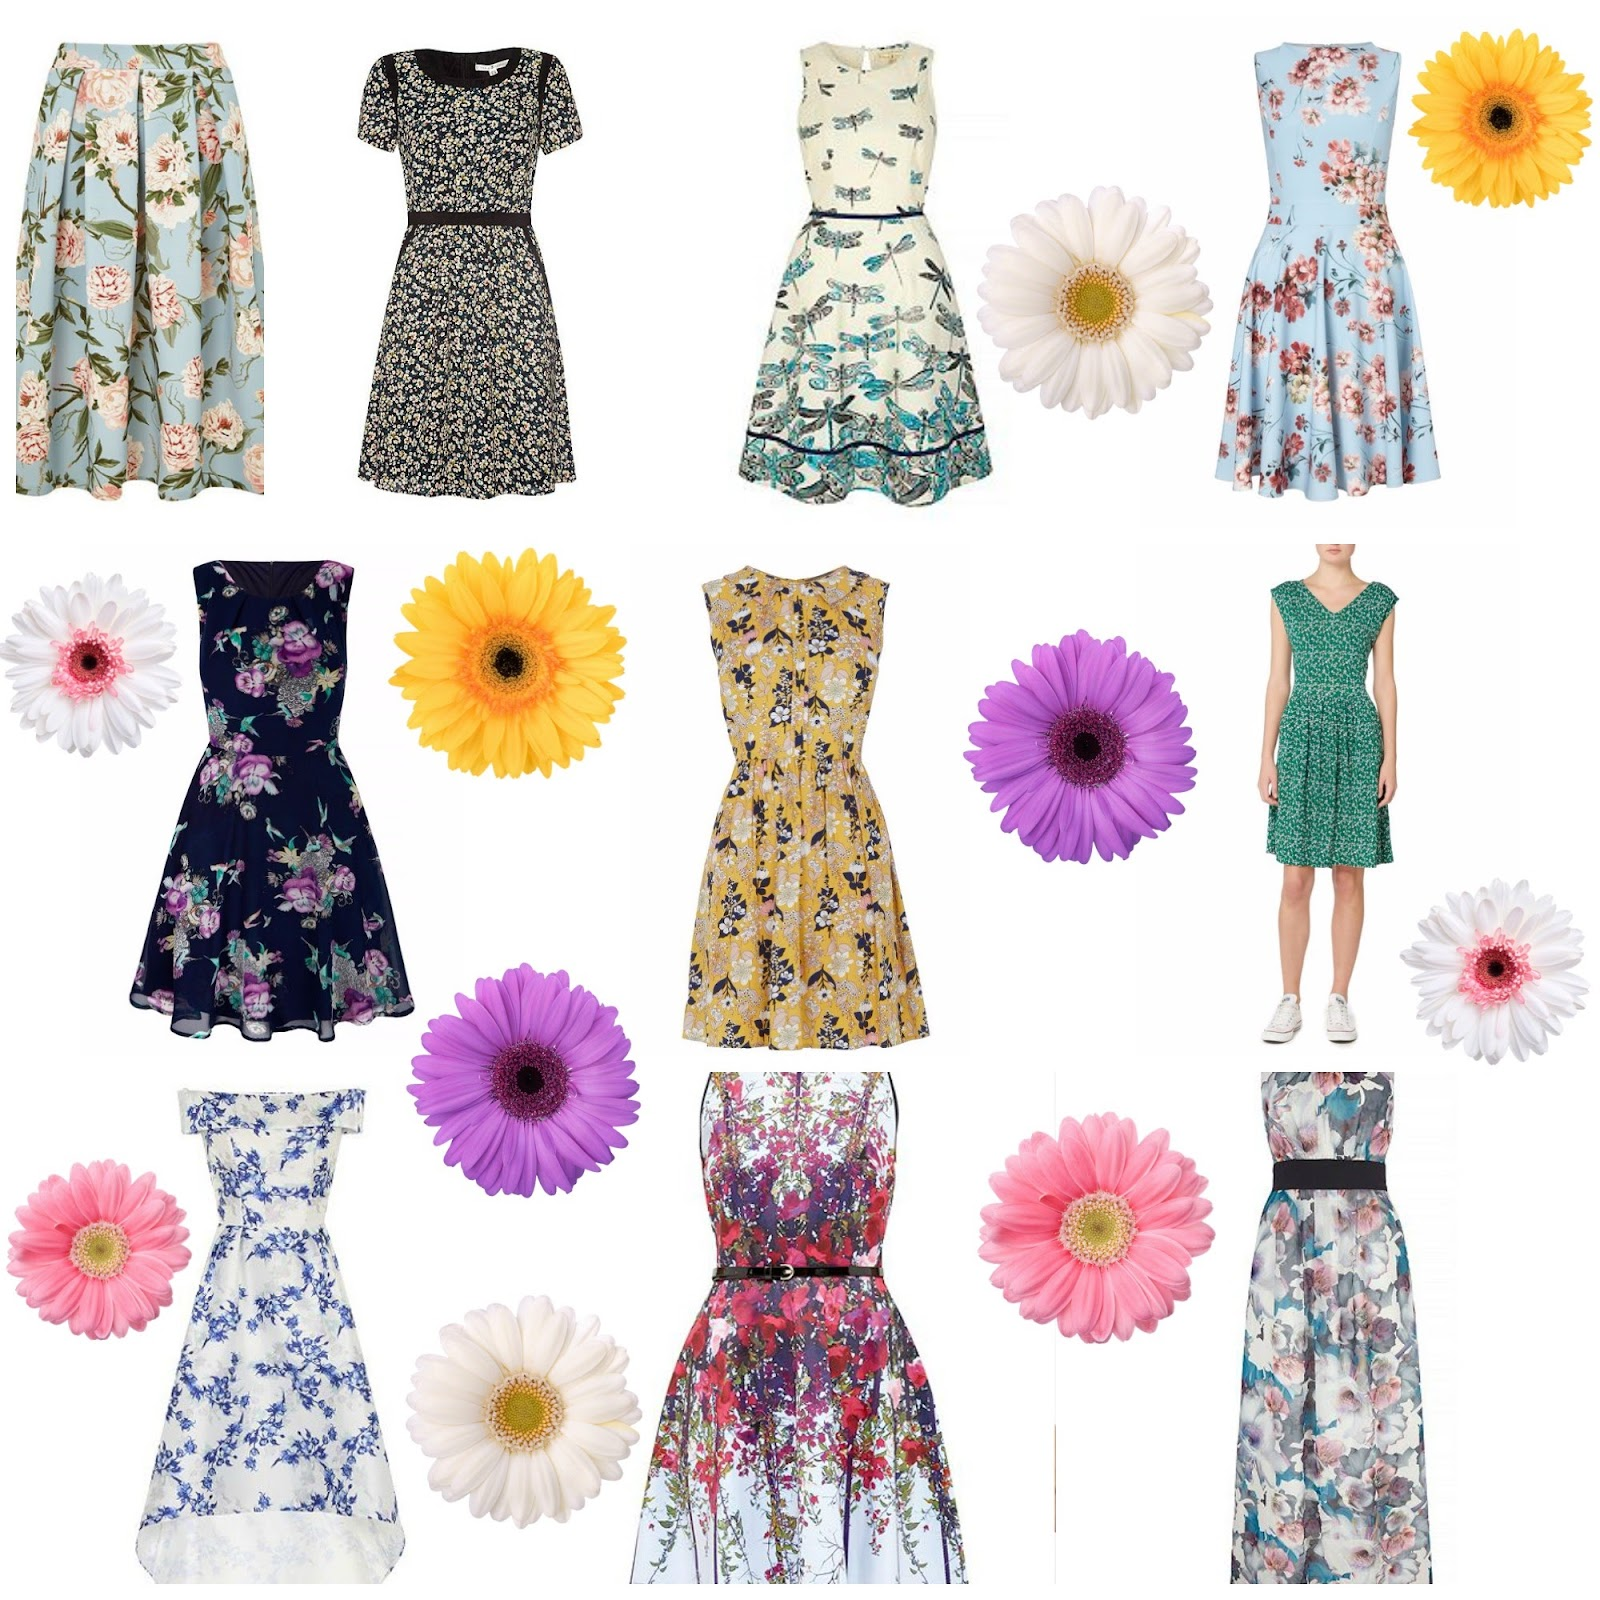 , Spring Fashion Wishlist:  Floral Dresses #SS16